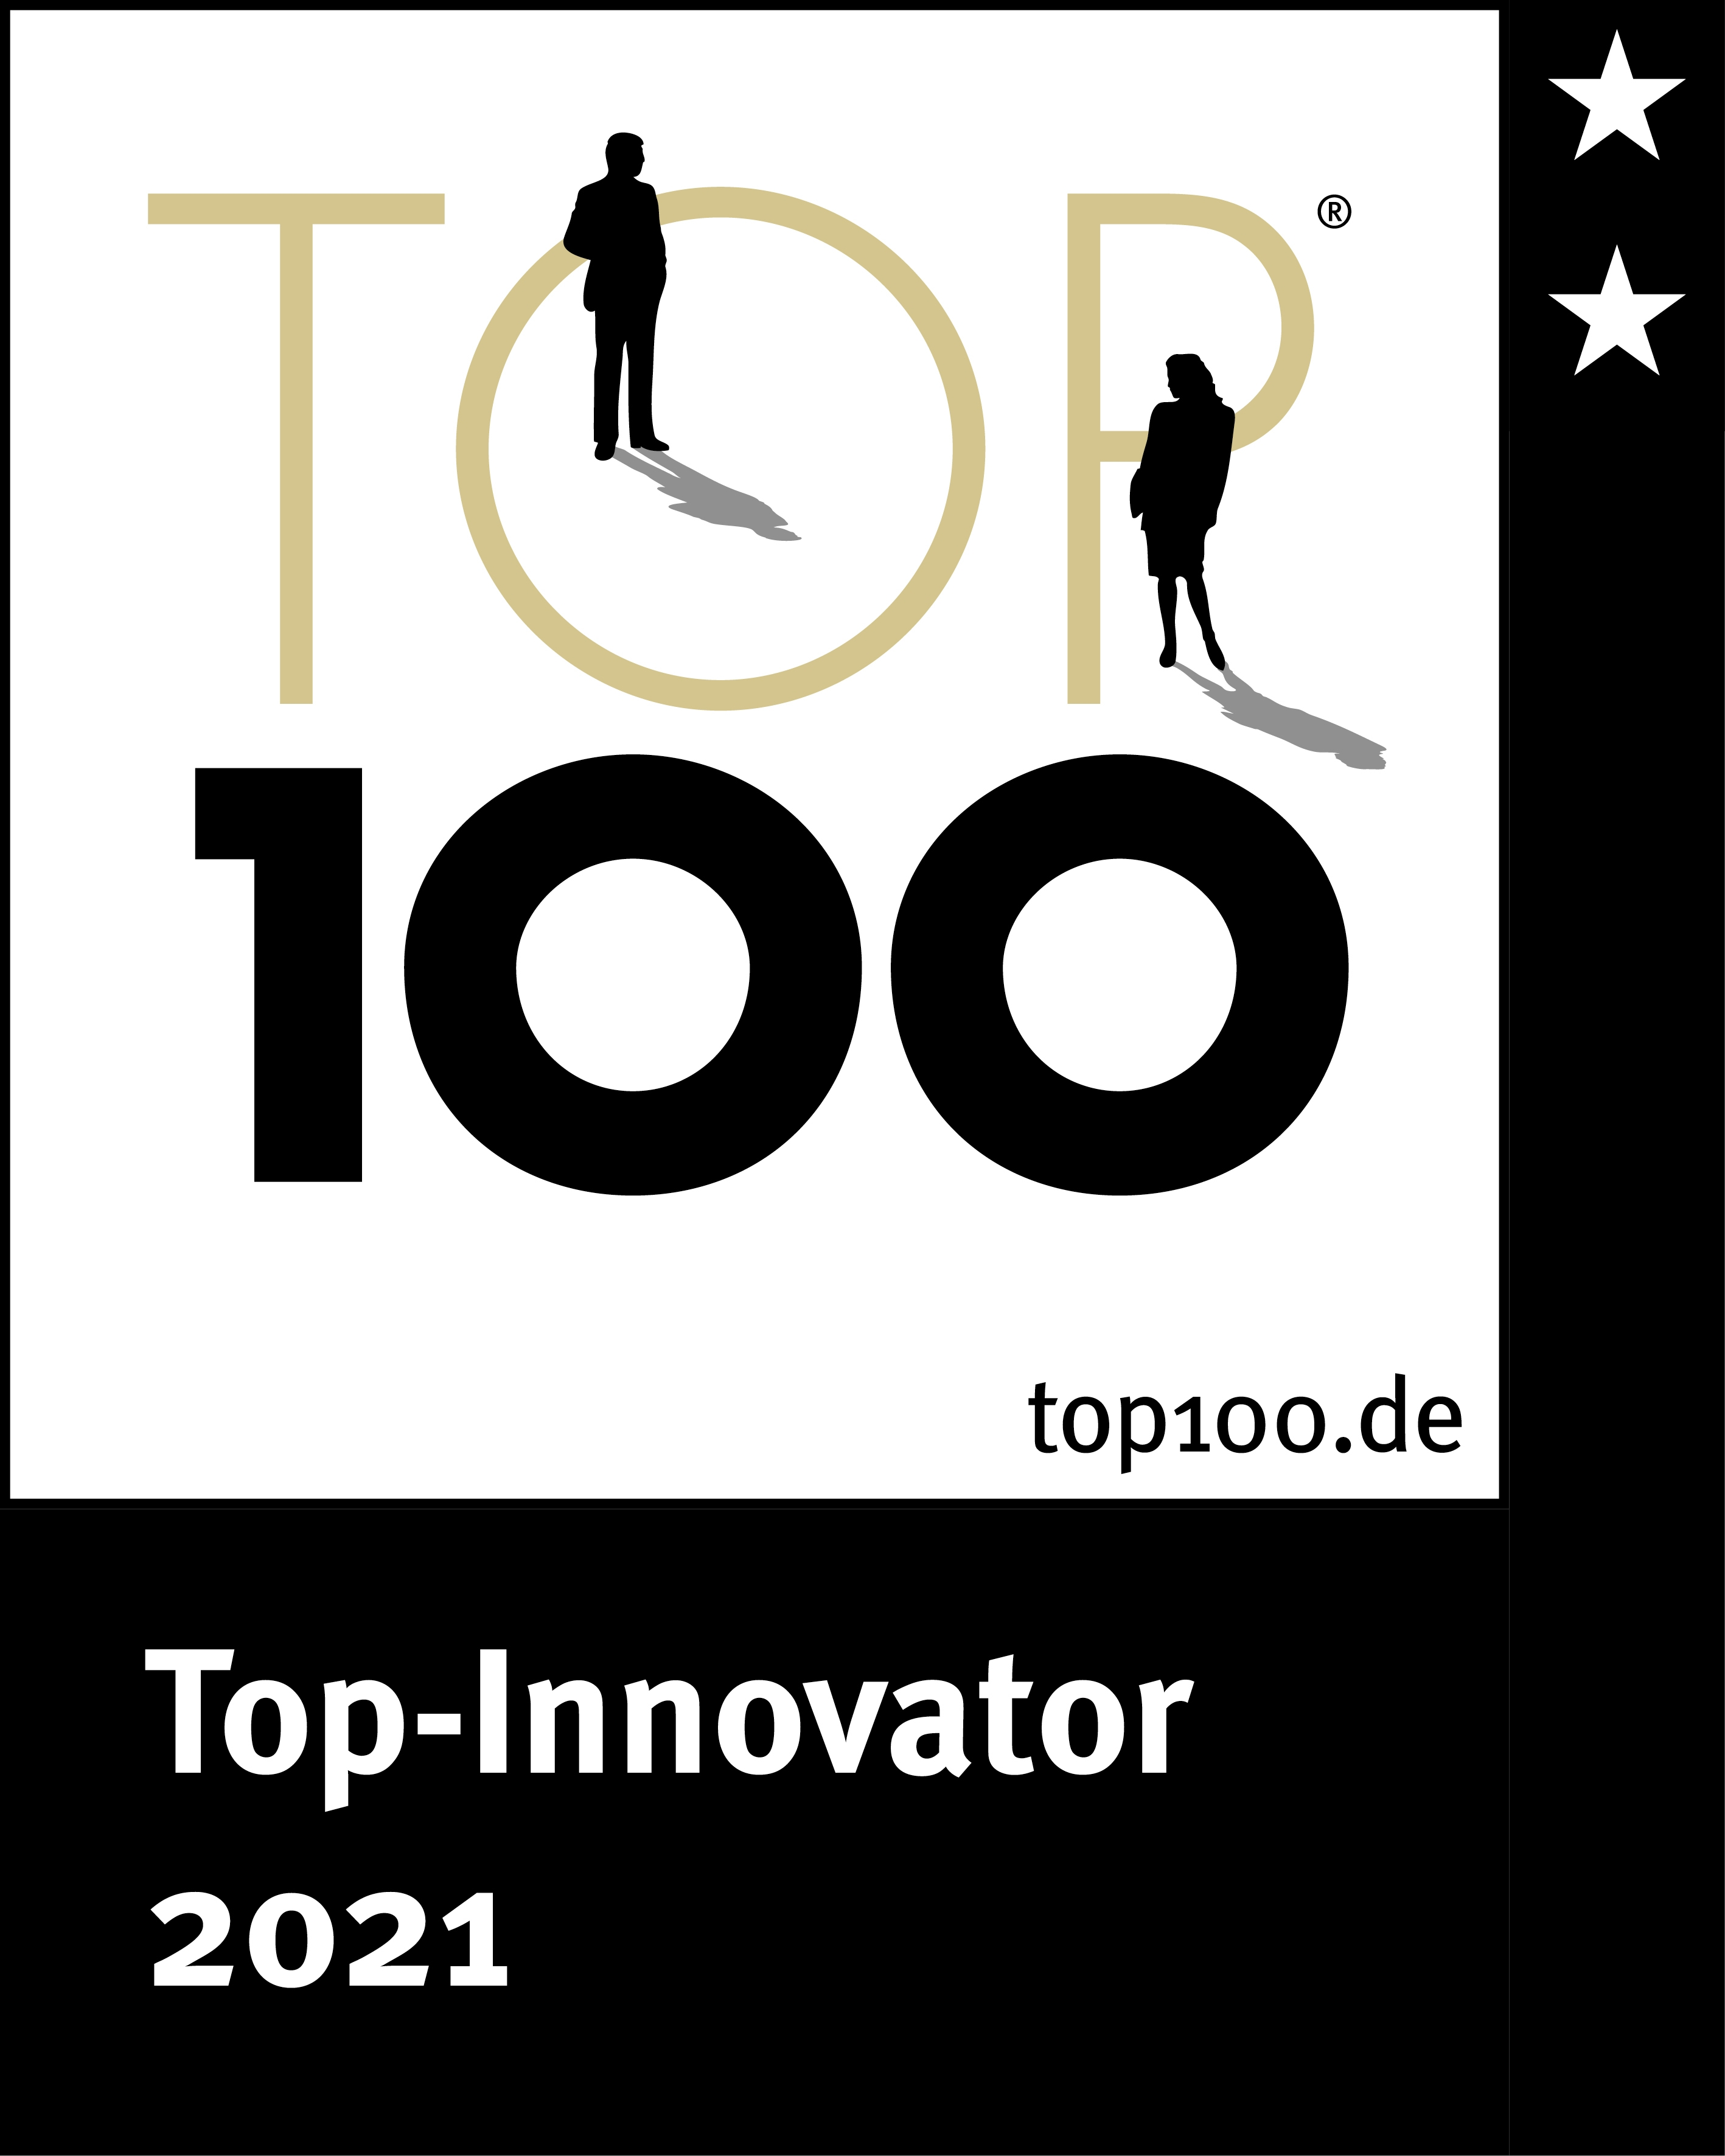 WAGNER ist Top-Innovator 2019